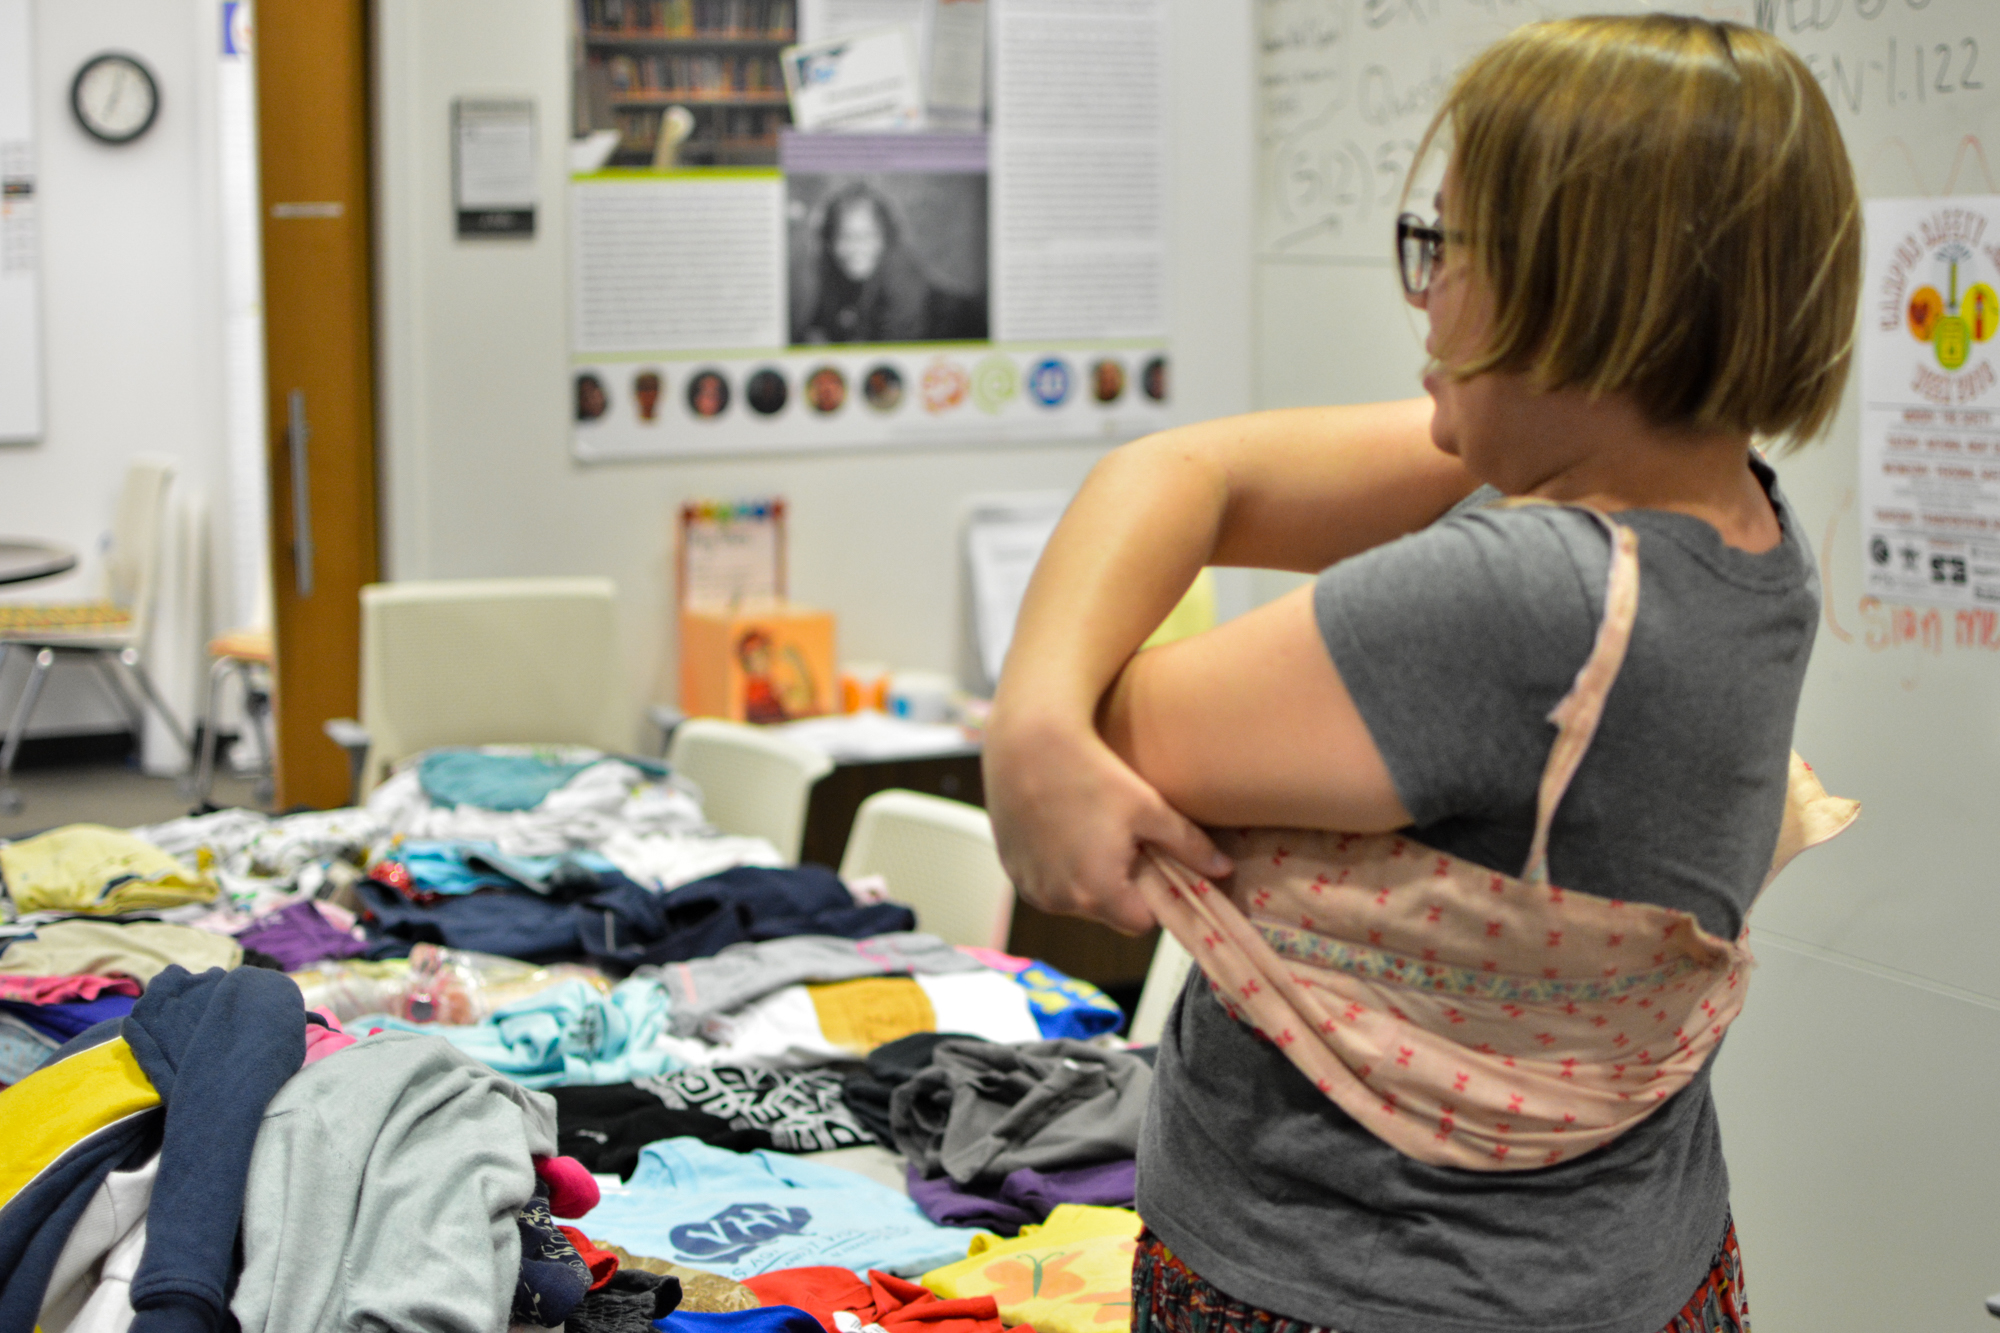 Many people, including volunteers, who attended the clothing swap got tried on various clothing items with the hopes of adding them to their own personal wardrobe.